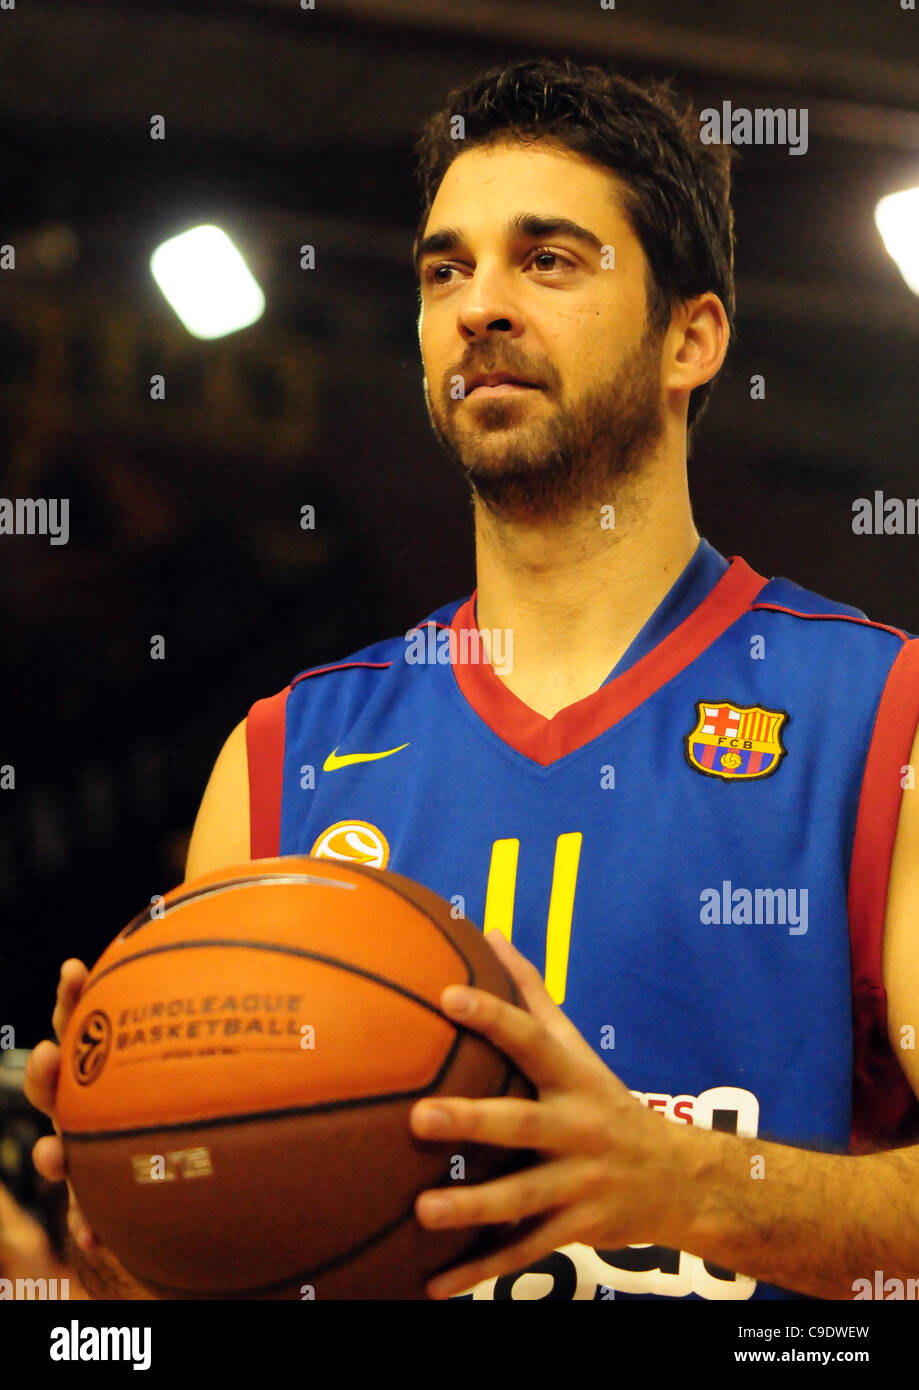 Juan Carlos Navarro (Regal FC Barcelona) with the match ball that has earned him being the Euroleague Basketball - Stock Image